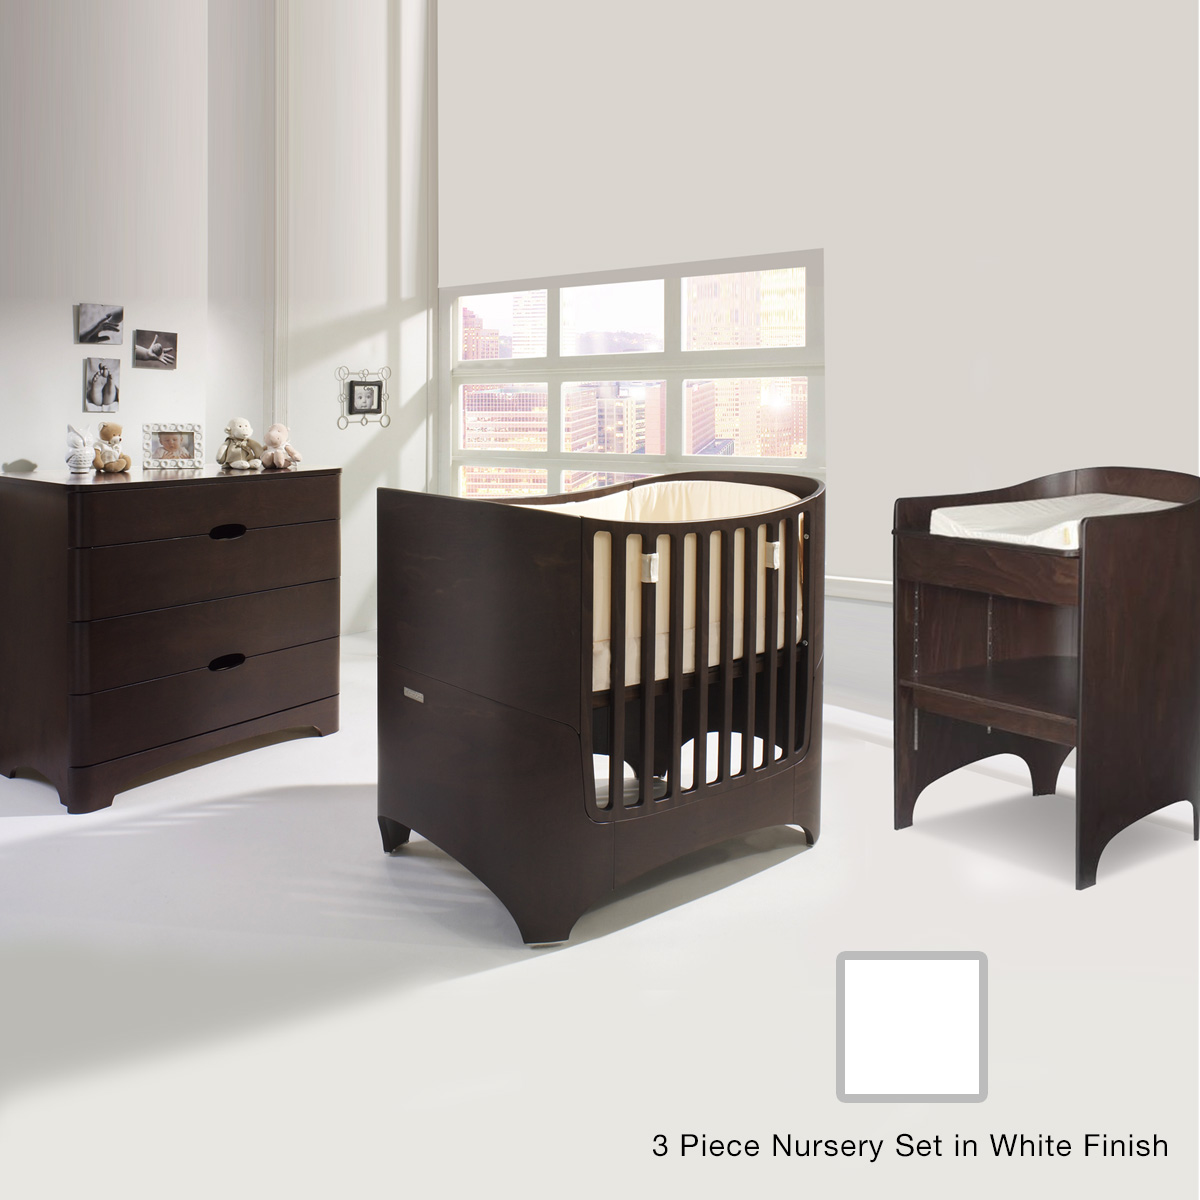 Tulip Leander 2 Piece Nursery Set Crib Conversion Kit Changing Table And 4 Drawer Dresser In White Free Shipping